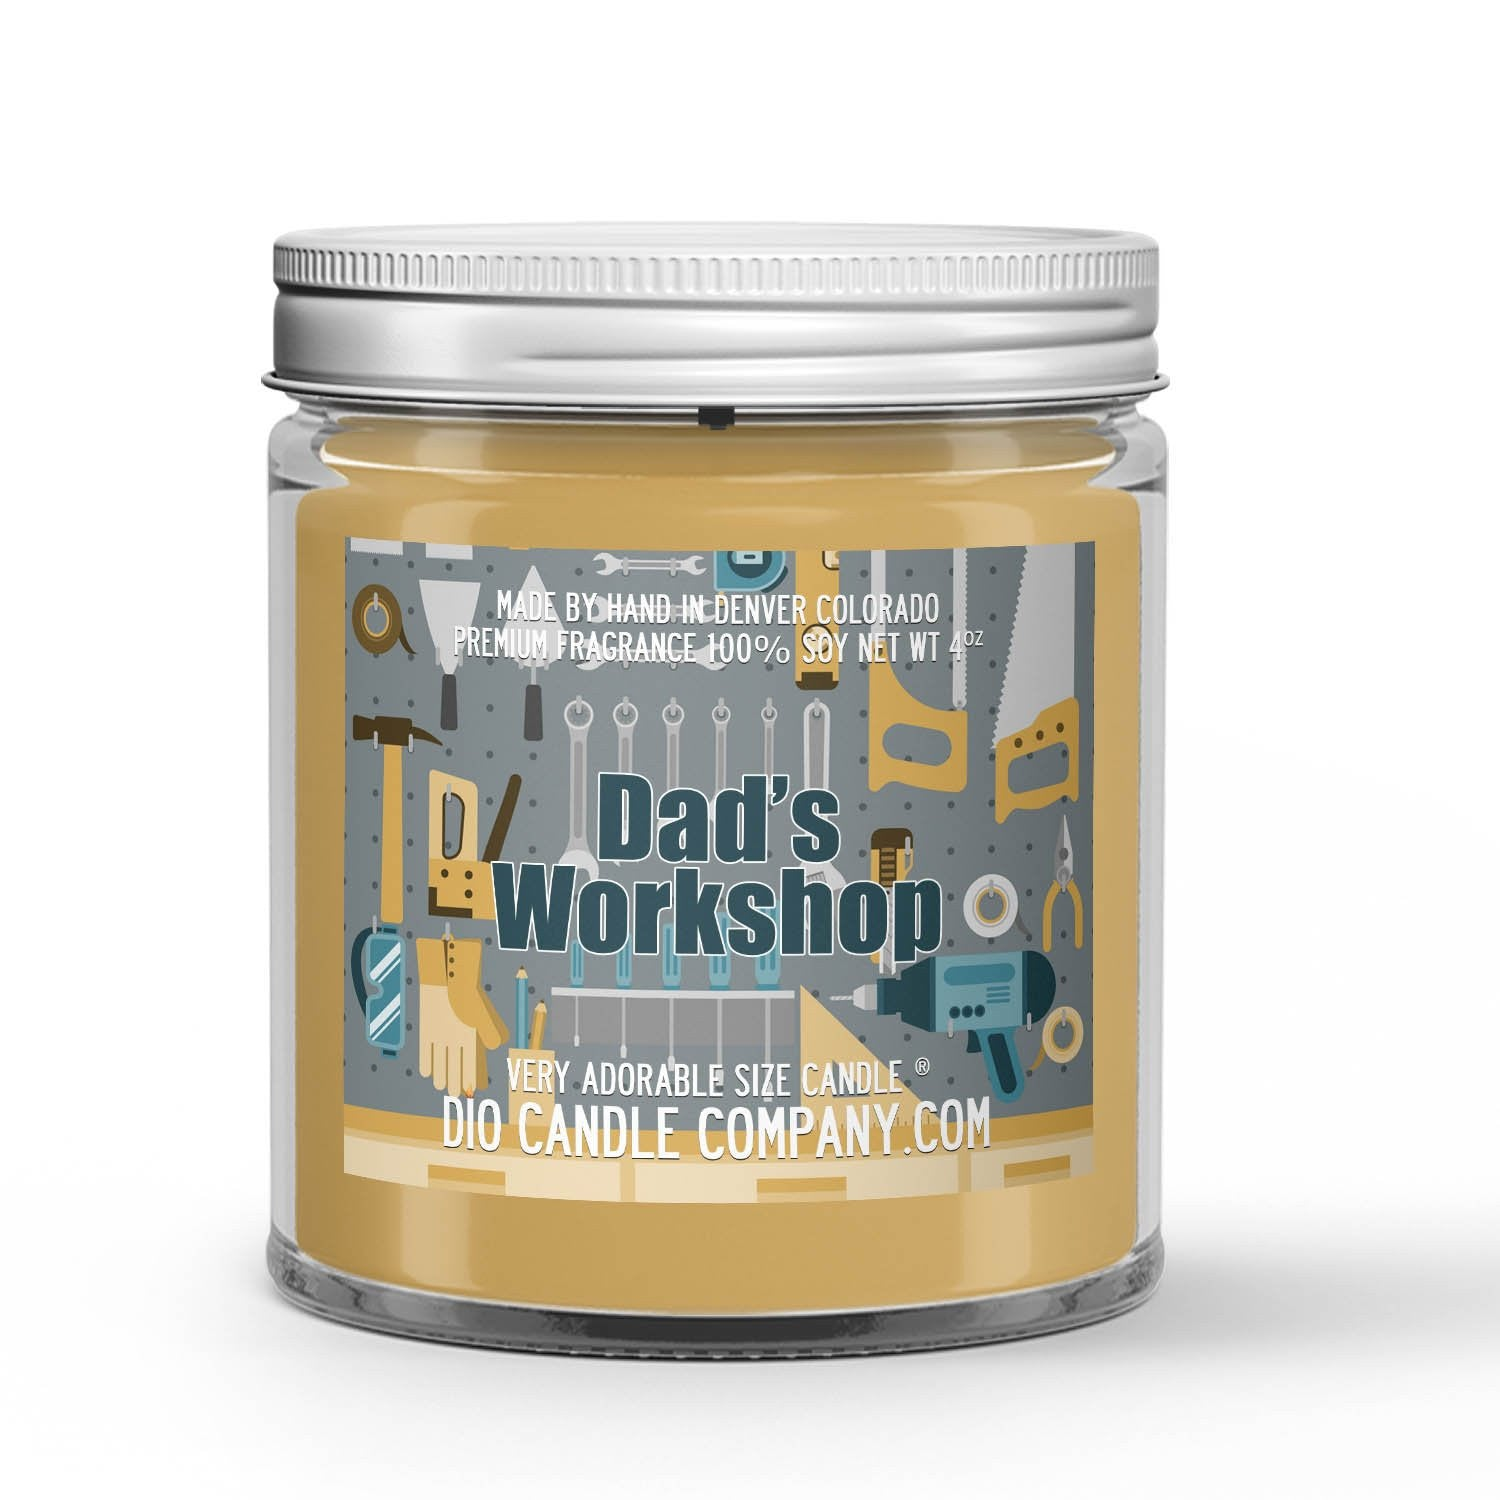 Sawdust - Plywood Scented - Father's Day Dad's Workshop Candle - 4 oz - Dio Candle Company